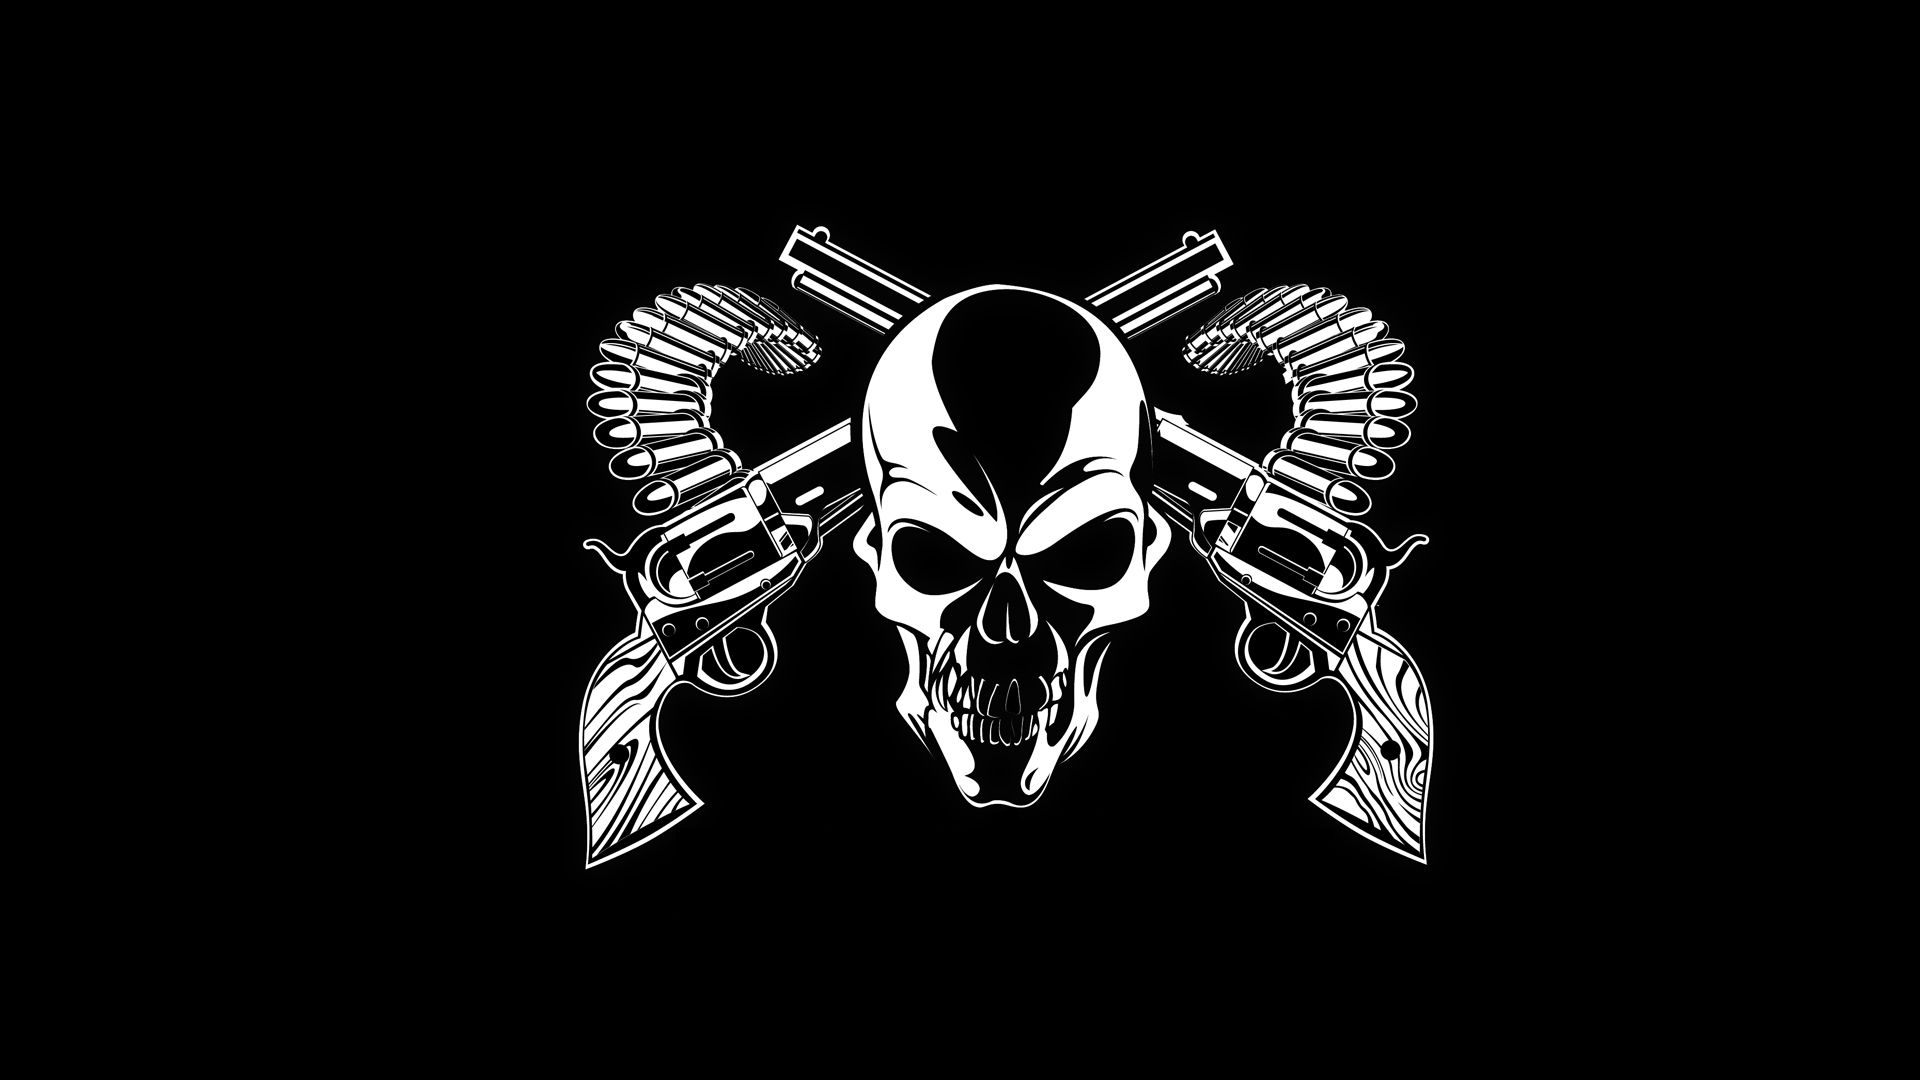 1920x1080 Dark horror skull weapons guns bullet ammo ammunition wallpaper ...